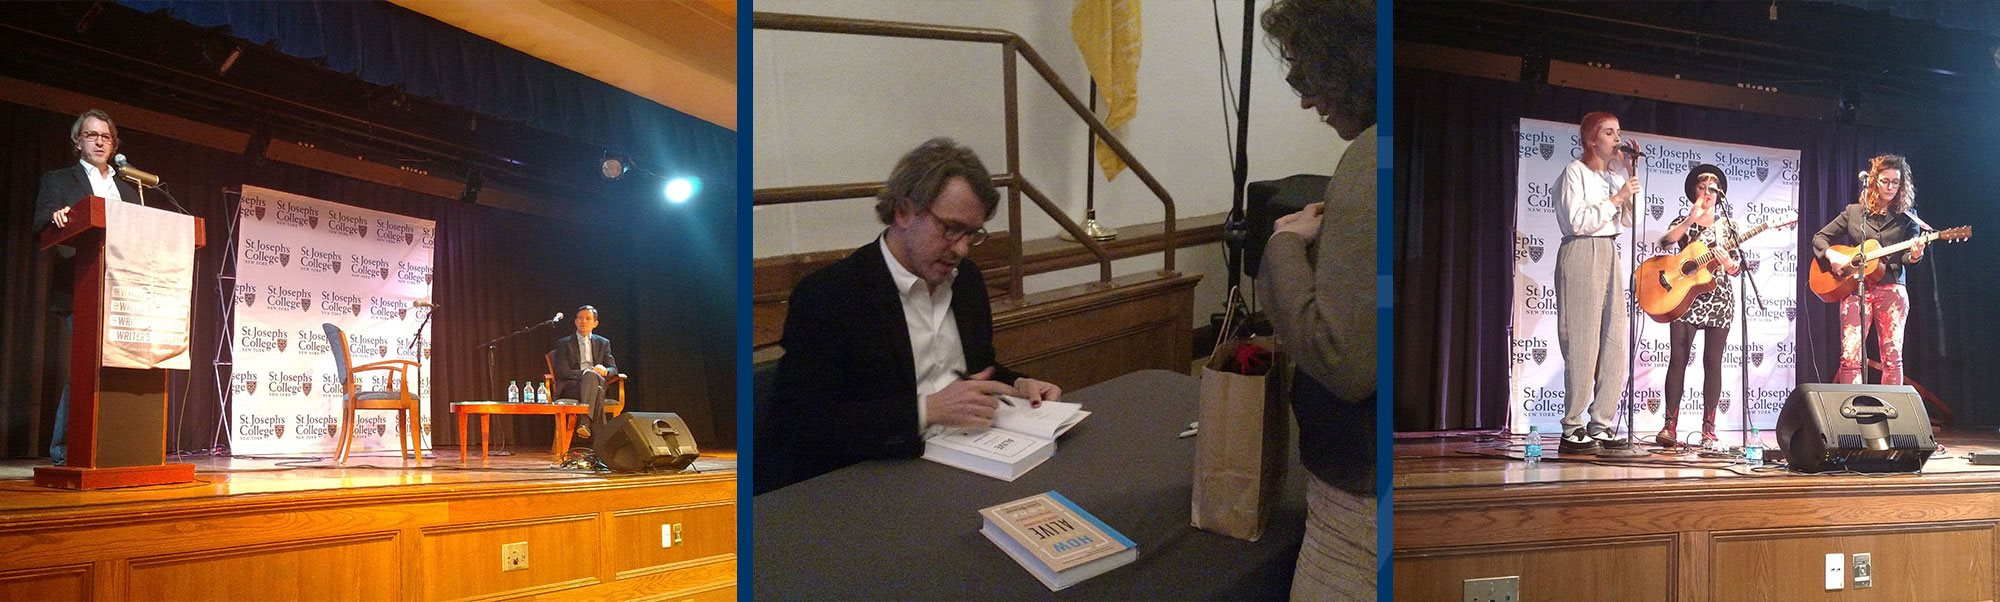 Colin Beavan and Dan Harris; Colin Beavan book signing; The Special Someones